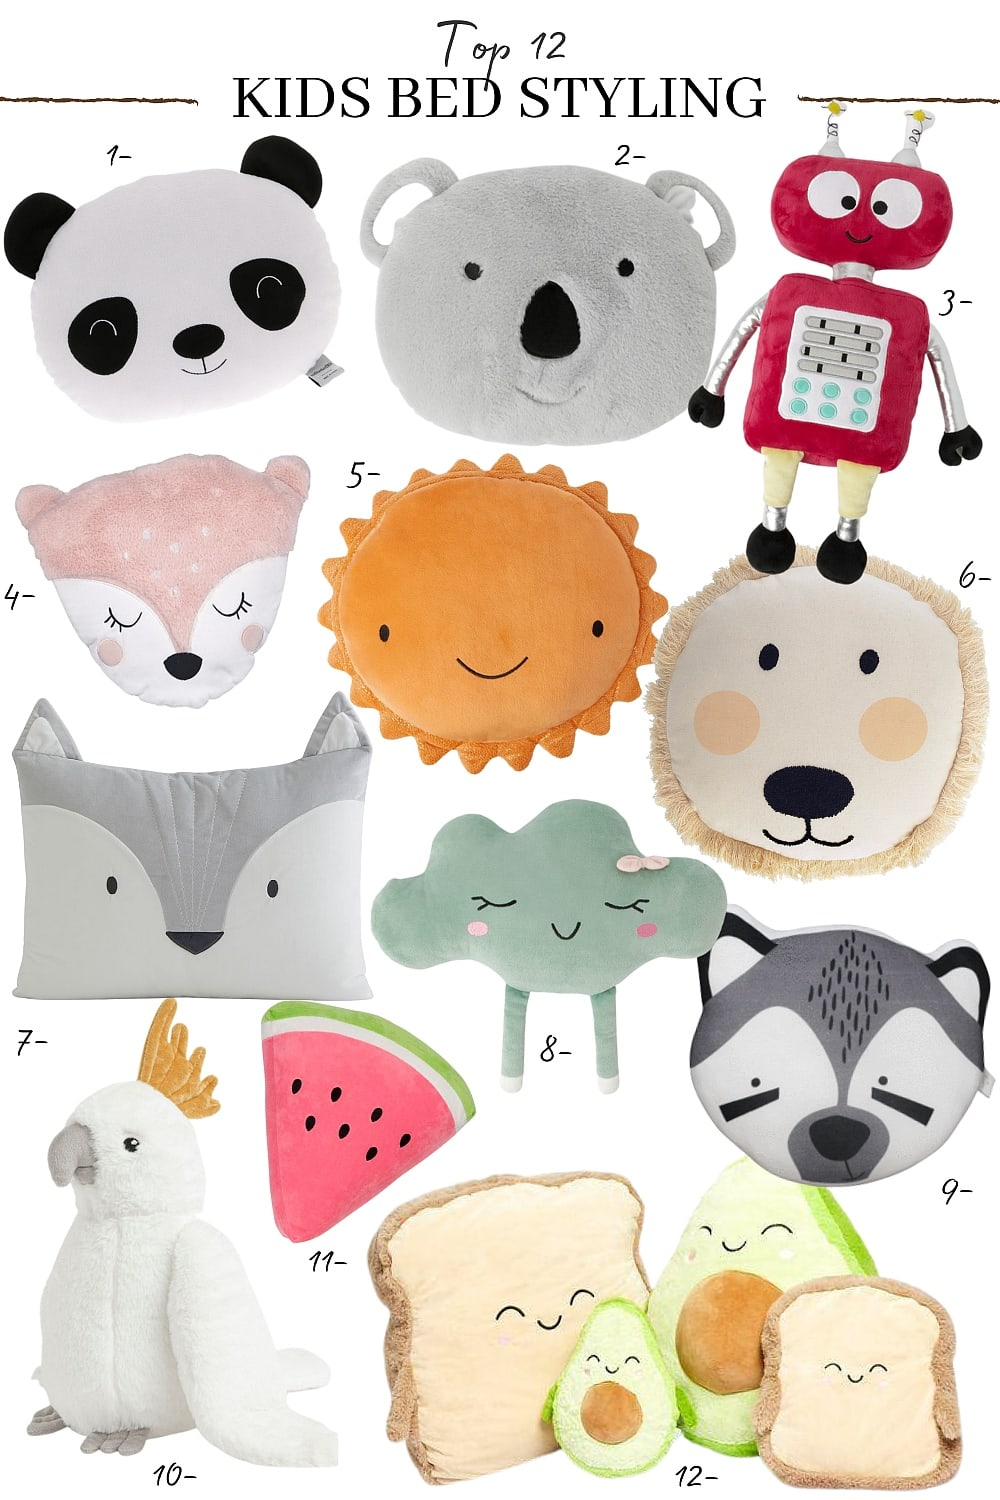 kids animal cushions for bed styling